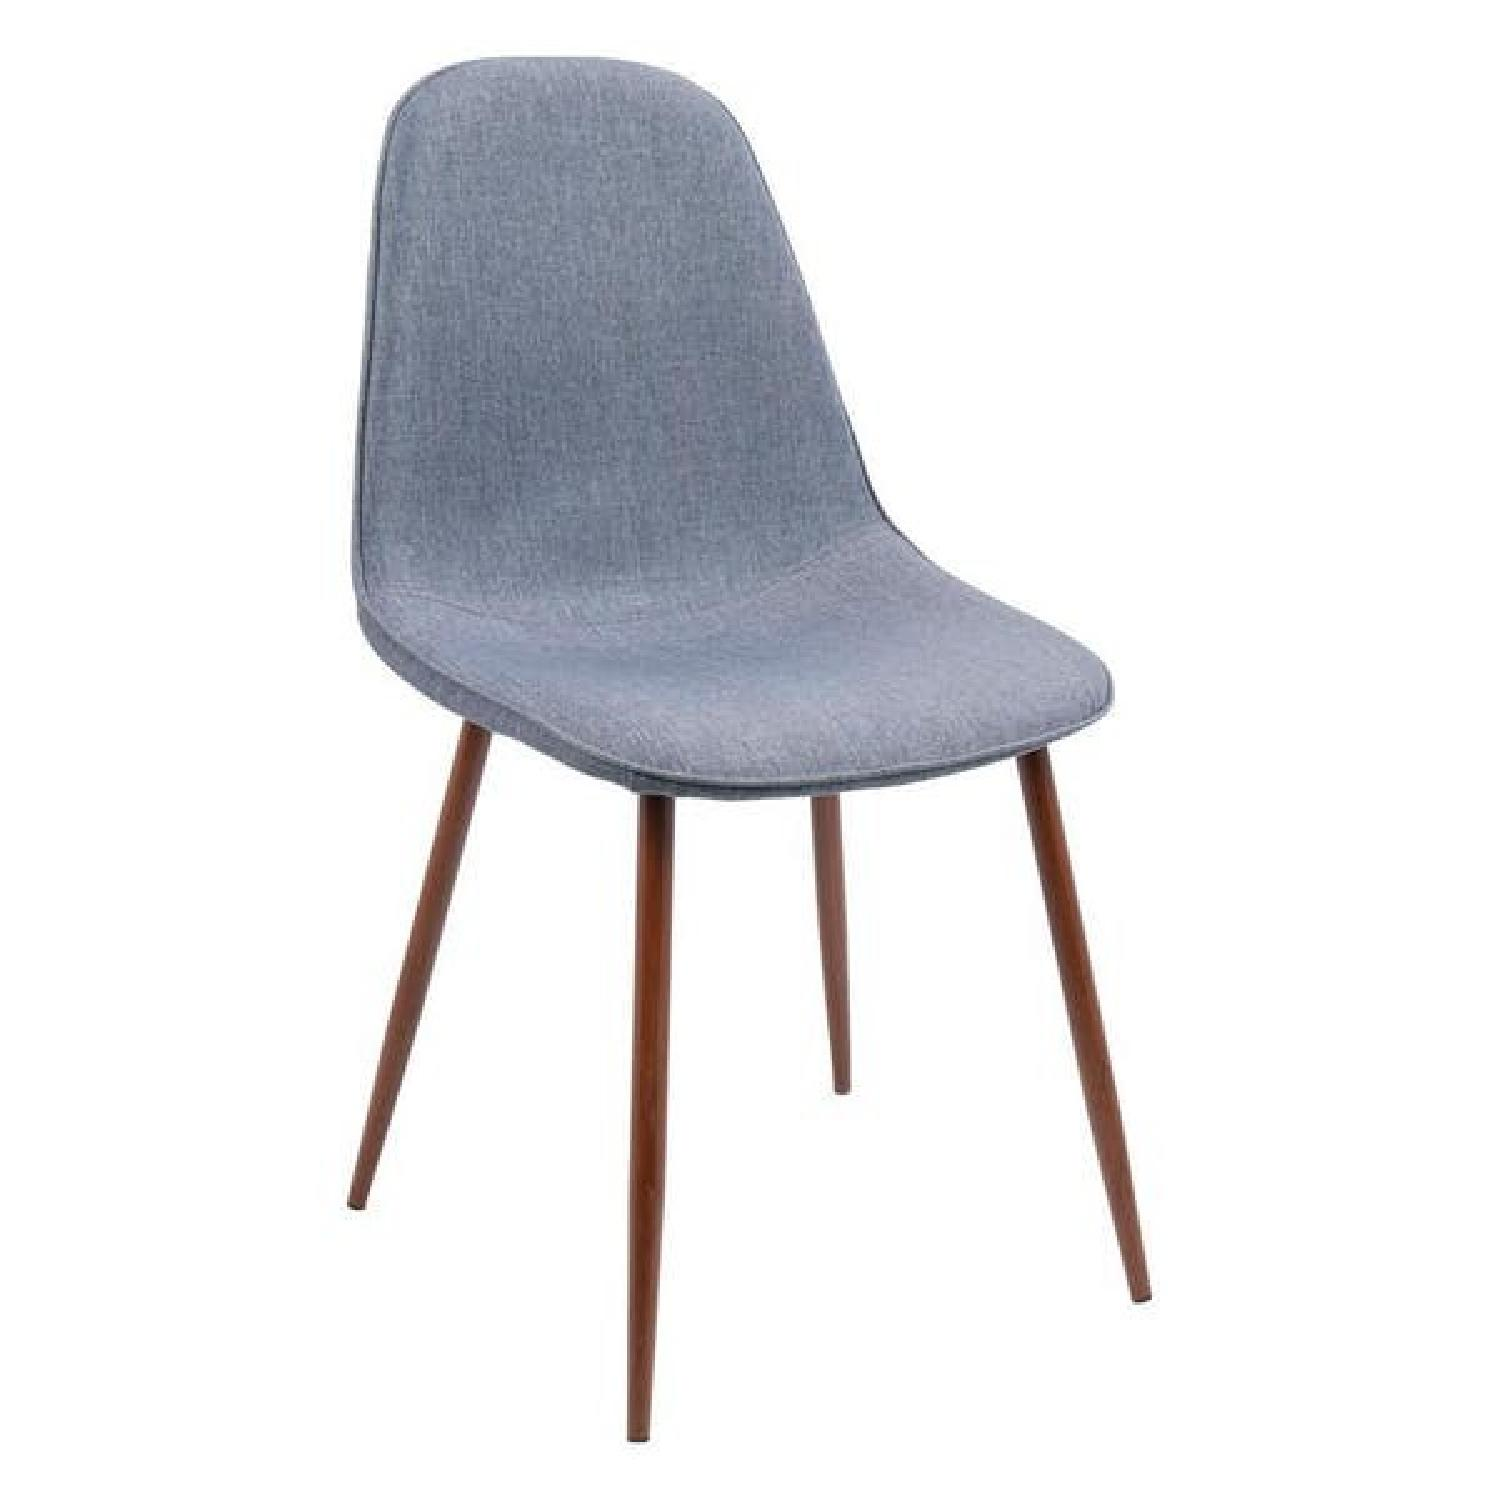 LumiSource Pebble Dining Chairs - image-0